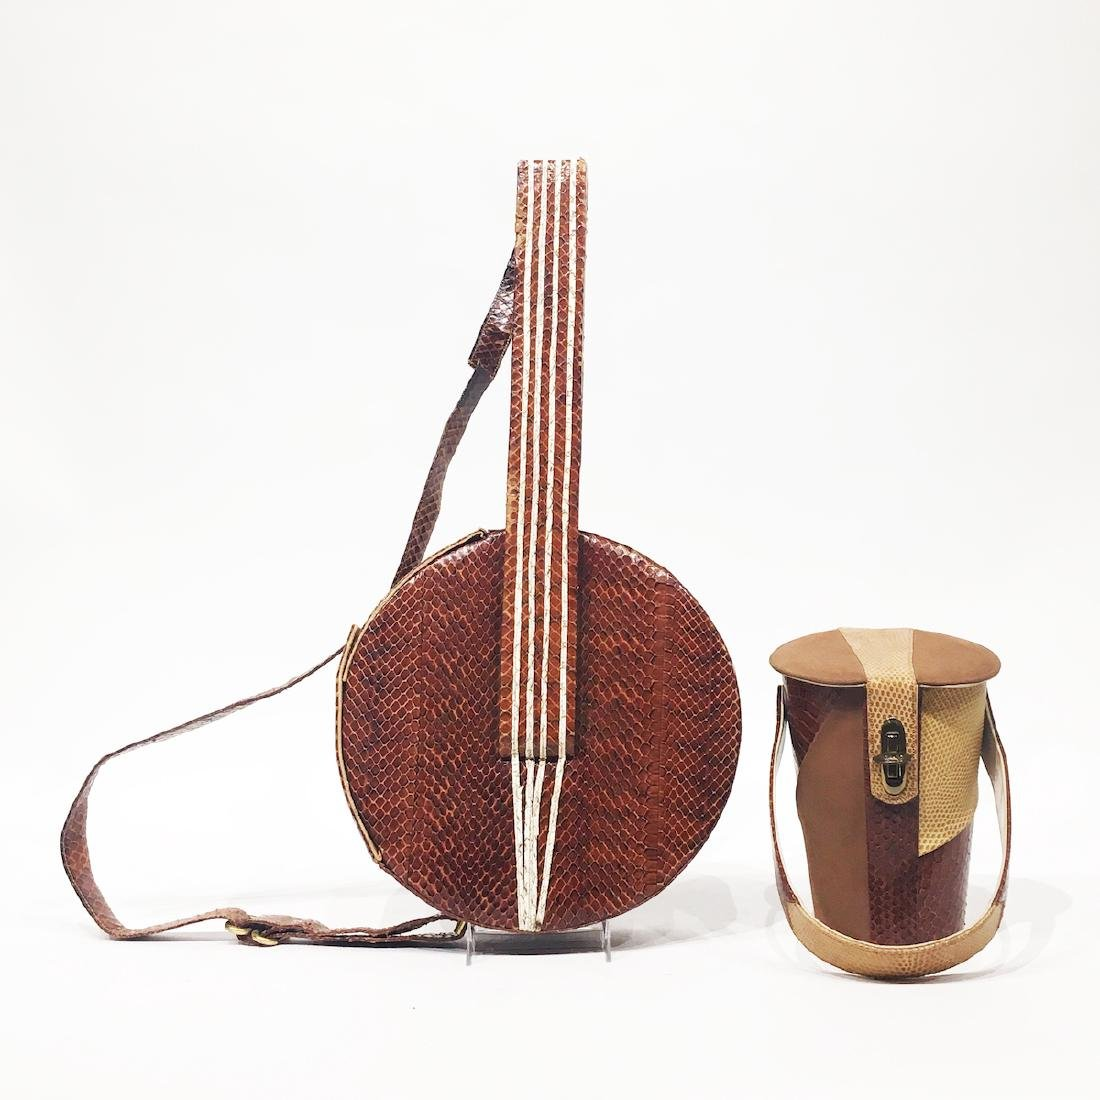 Two Snakeskin and Leather Purses Banjo & Drum